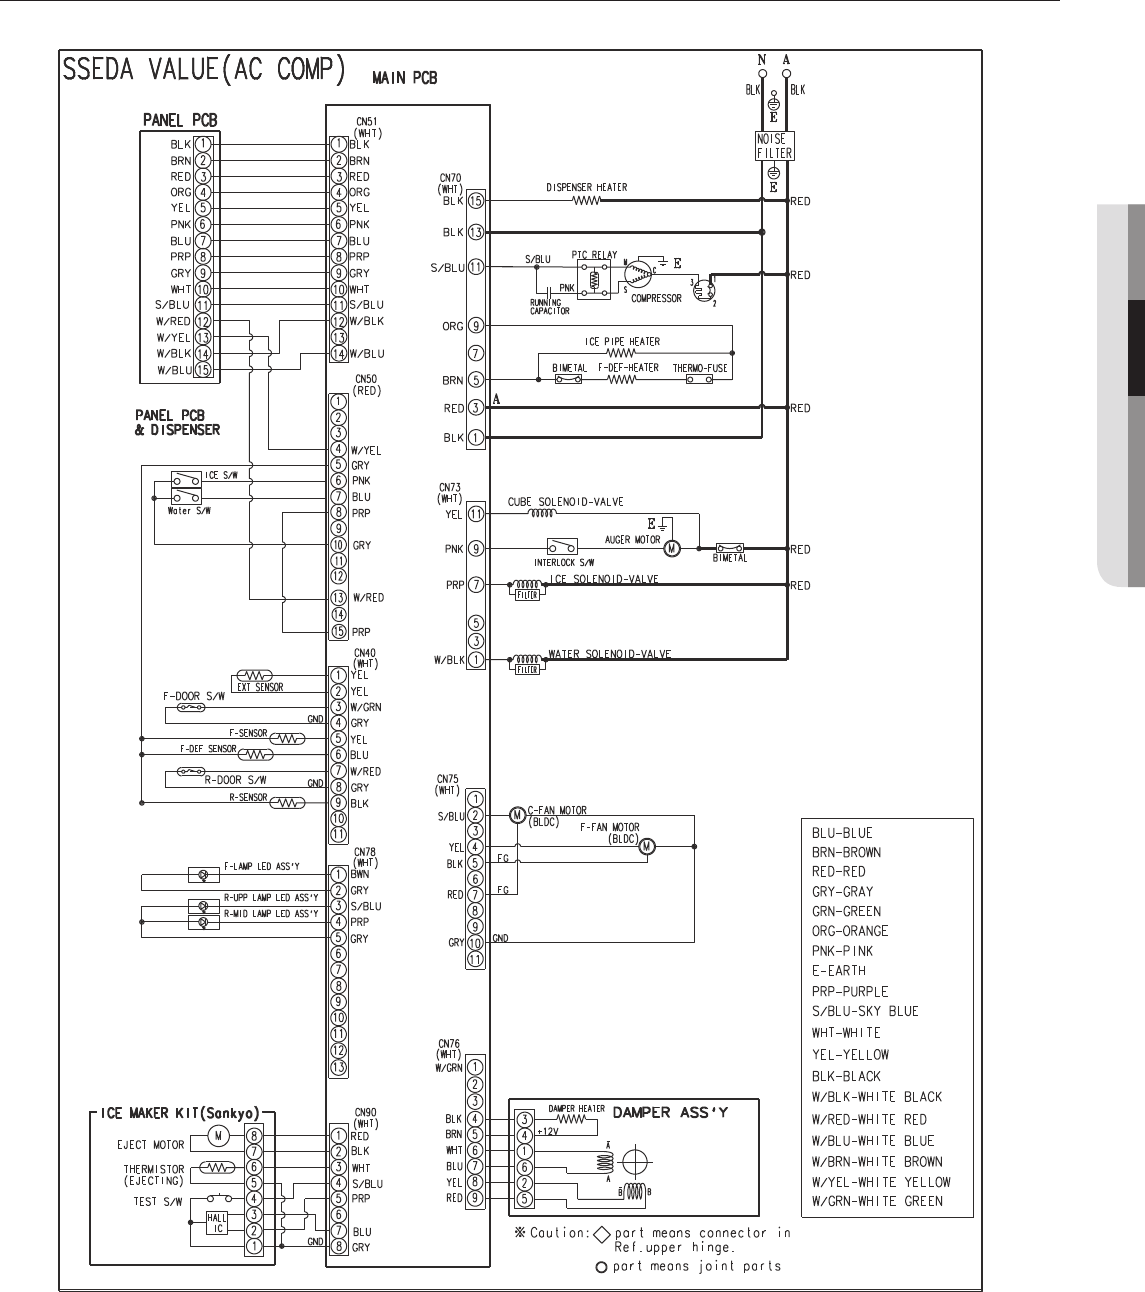 21aa6212 5c03 4539 ac02 99a0885d5c5e bg1f page 31 of samsung refrigerator rs261mdwp user guide wiring diagram for a refrigerator compressor at soozxer.org